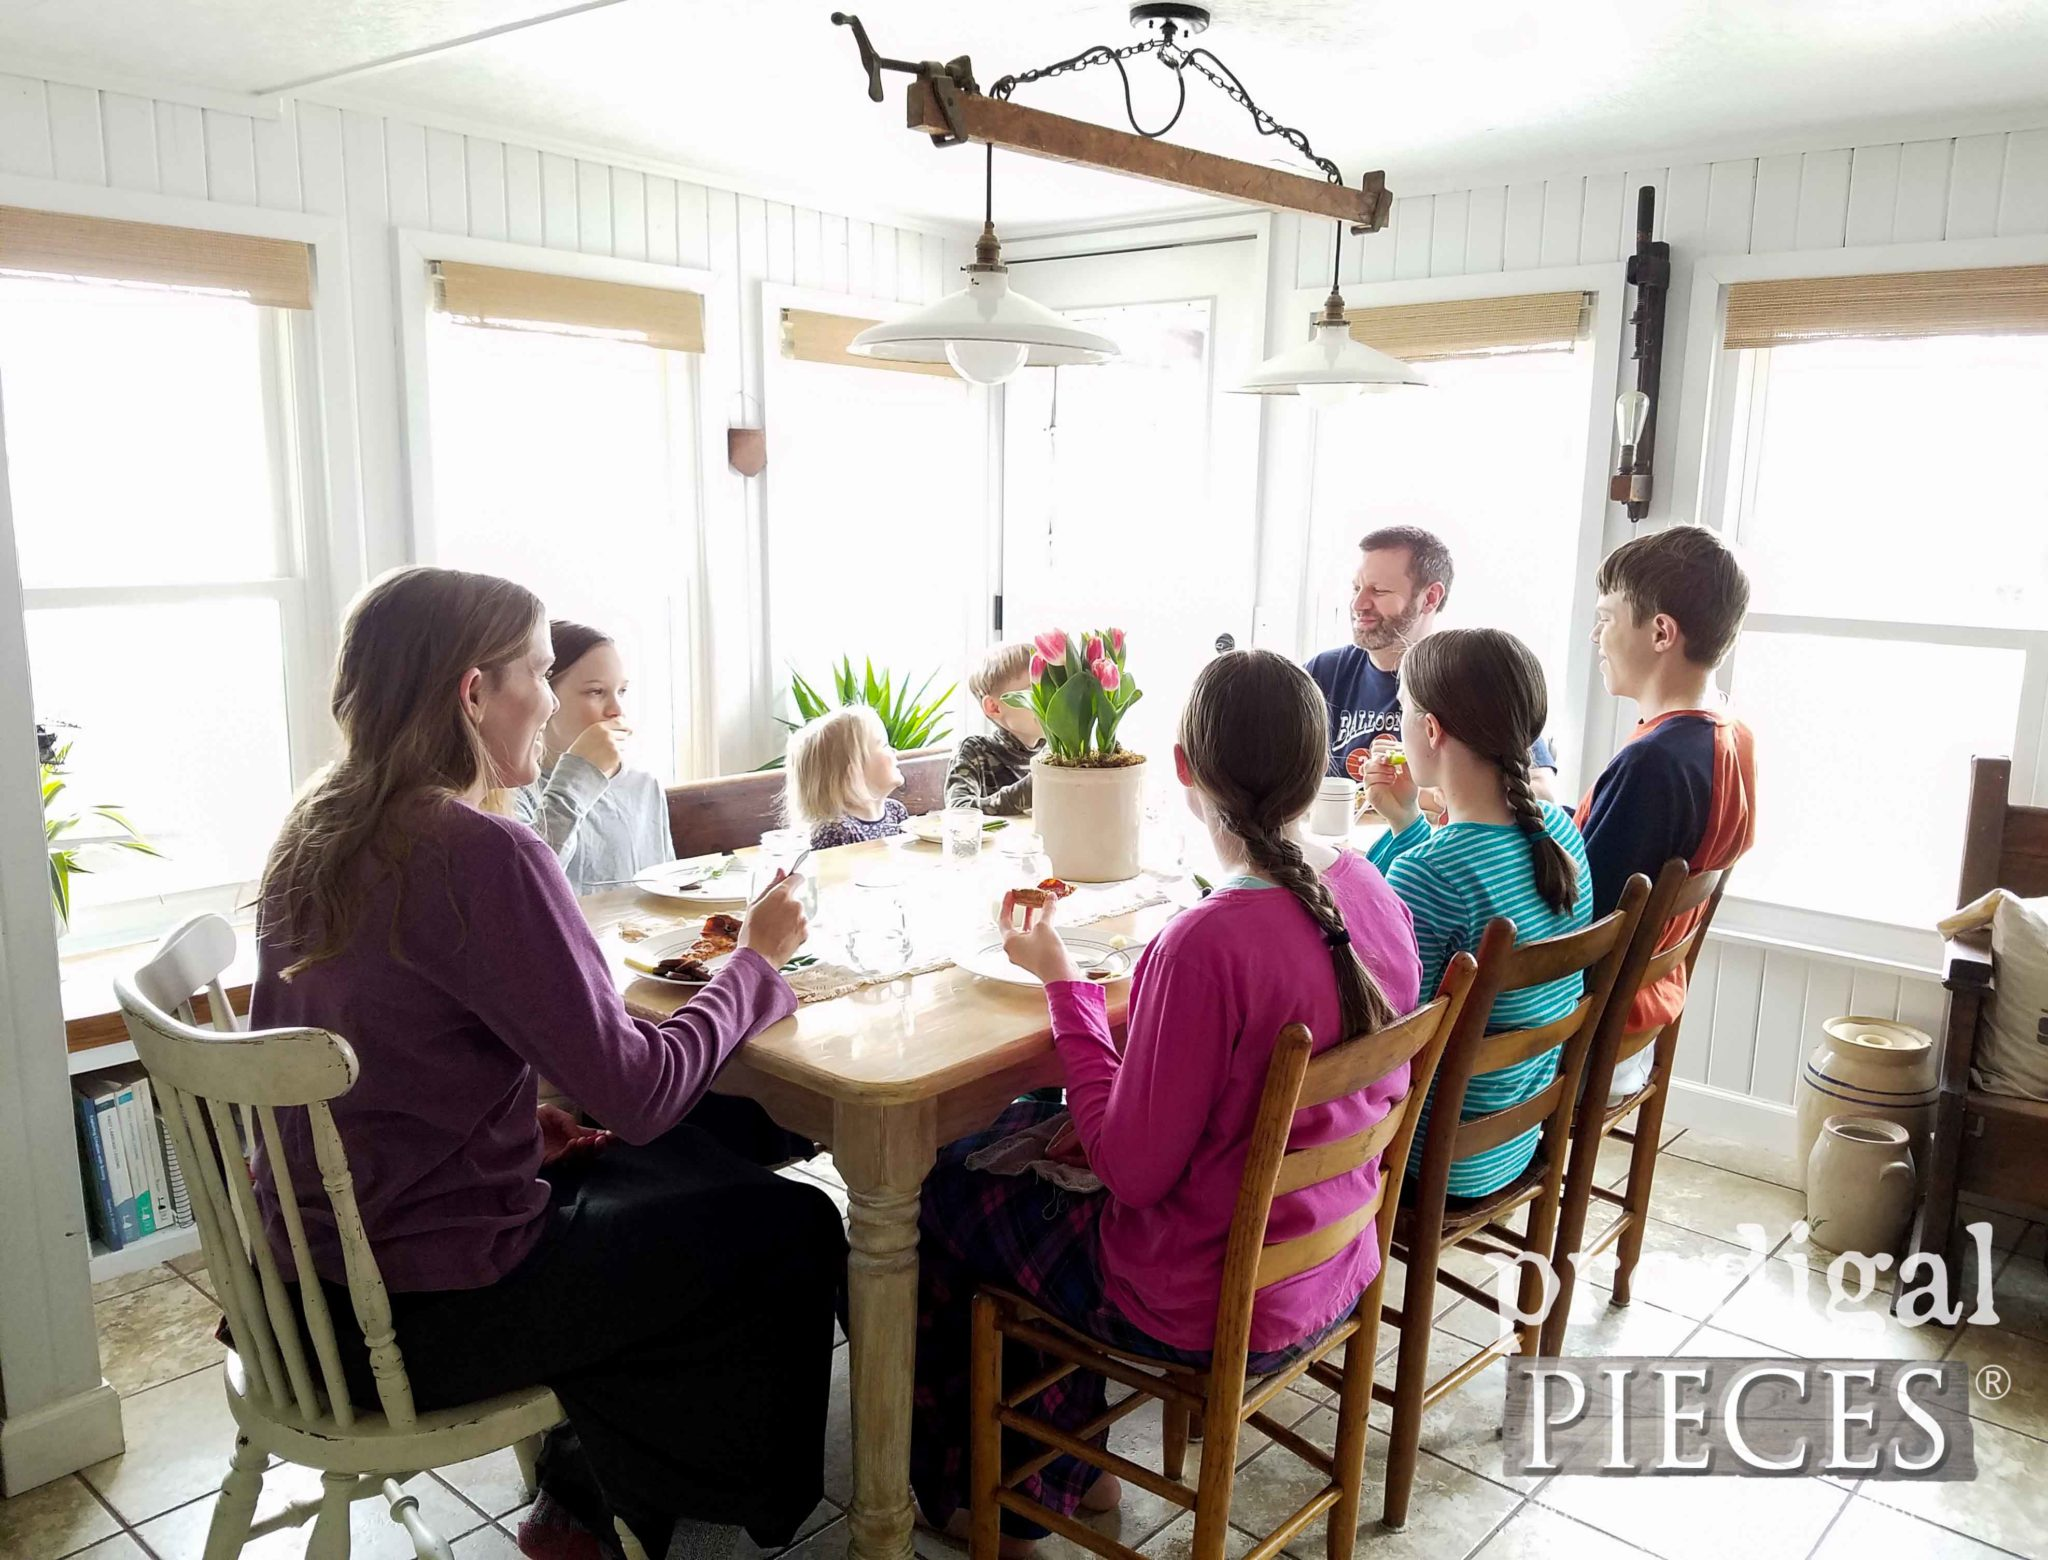 JC & Larissa of Prodigal Pieces Dining with her Family of 8 in their farmhouse kitchen | prodigalpieces.com